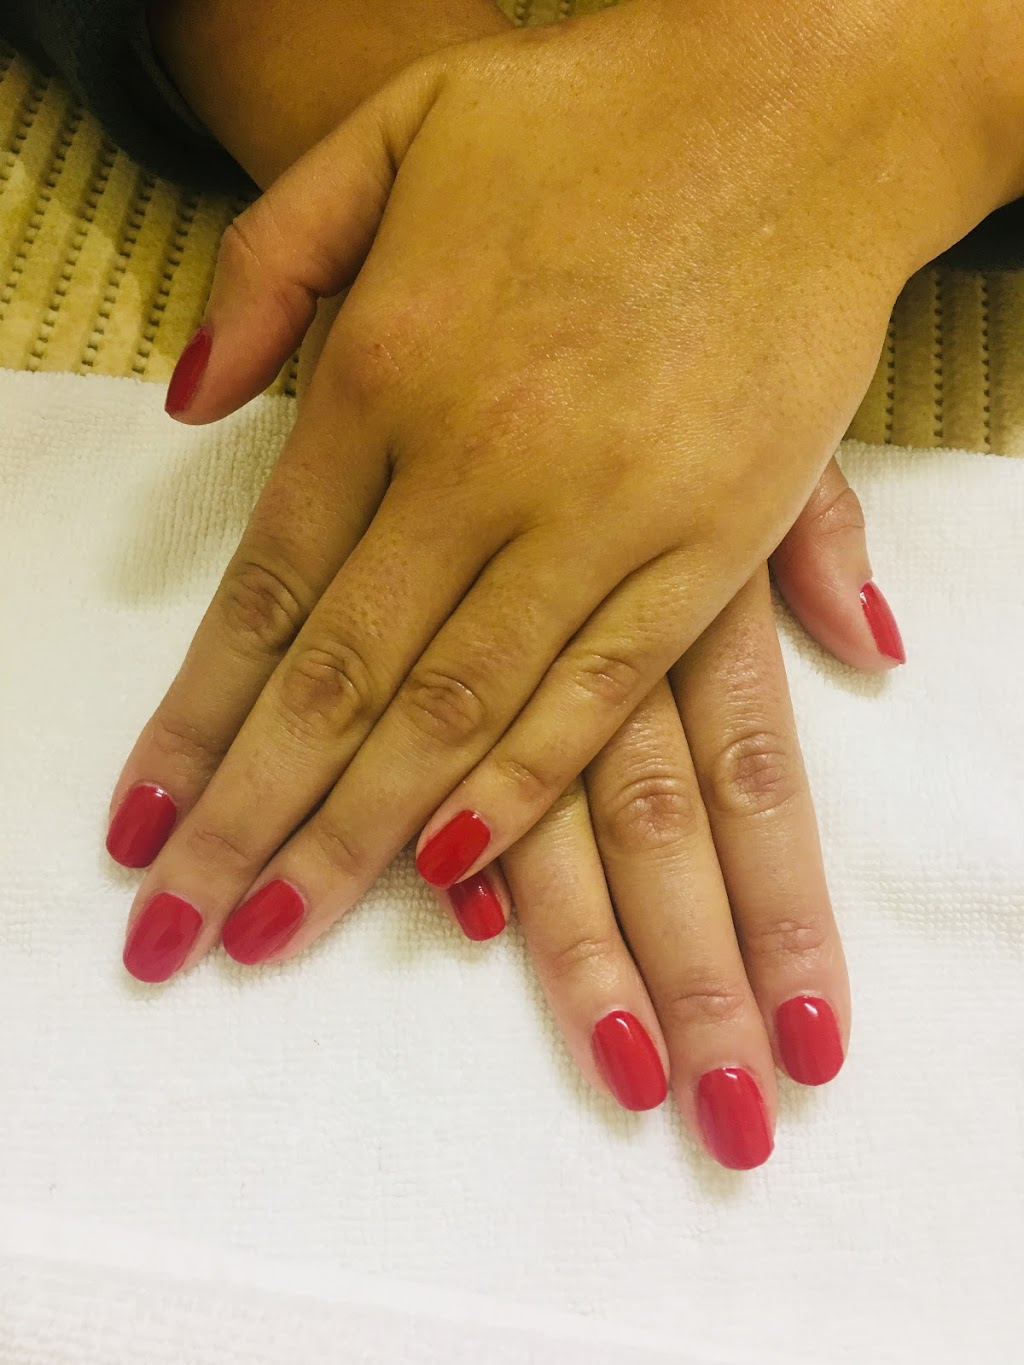 GRACES MAJESTIC BEAUTY. All Types Of Waxing ,Beauty Salon. Fawkn | hair care | 9 Lydia Ave, Campbellfield VIC 3061, Australia | 0417575285 OR +61 417 575 285